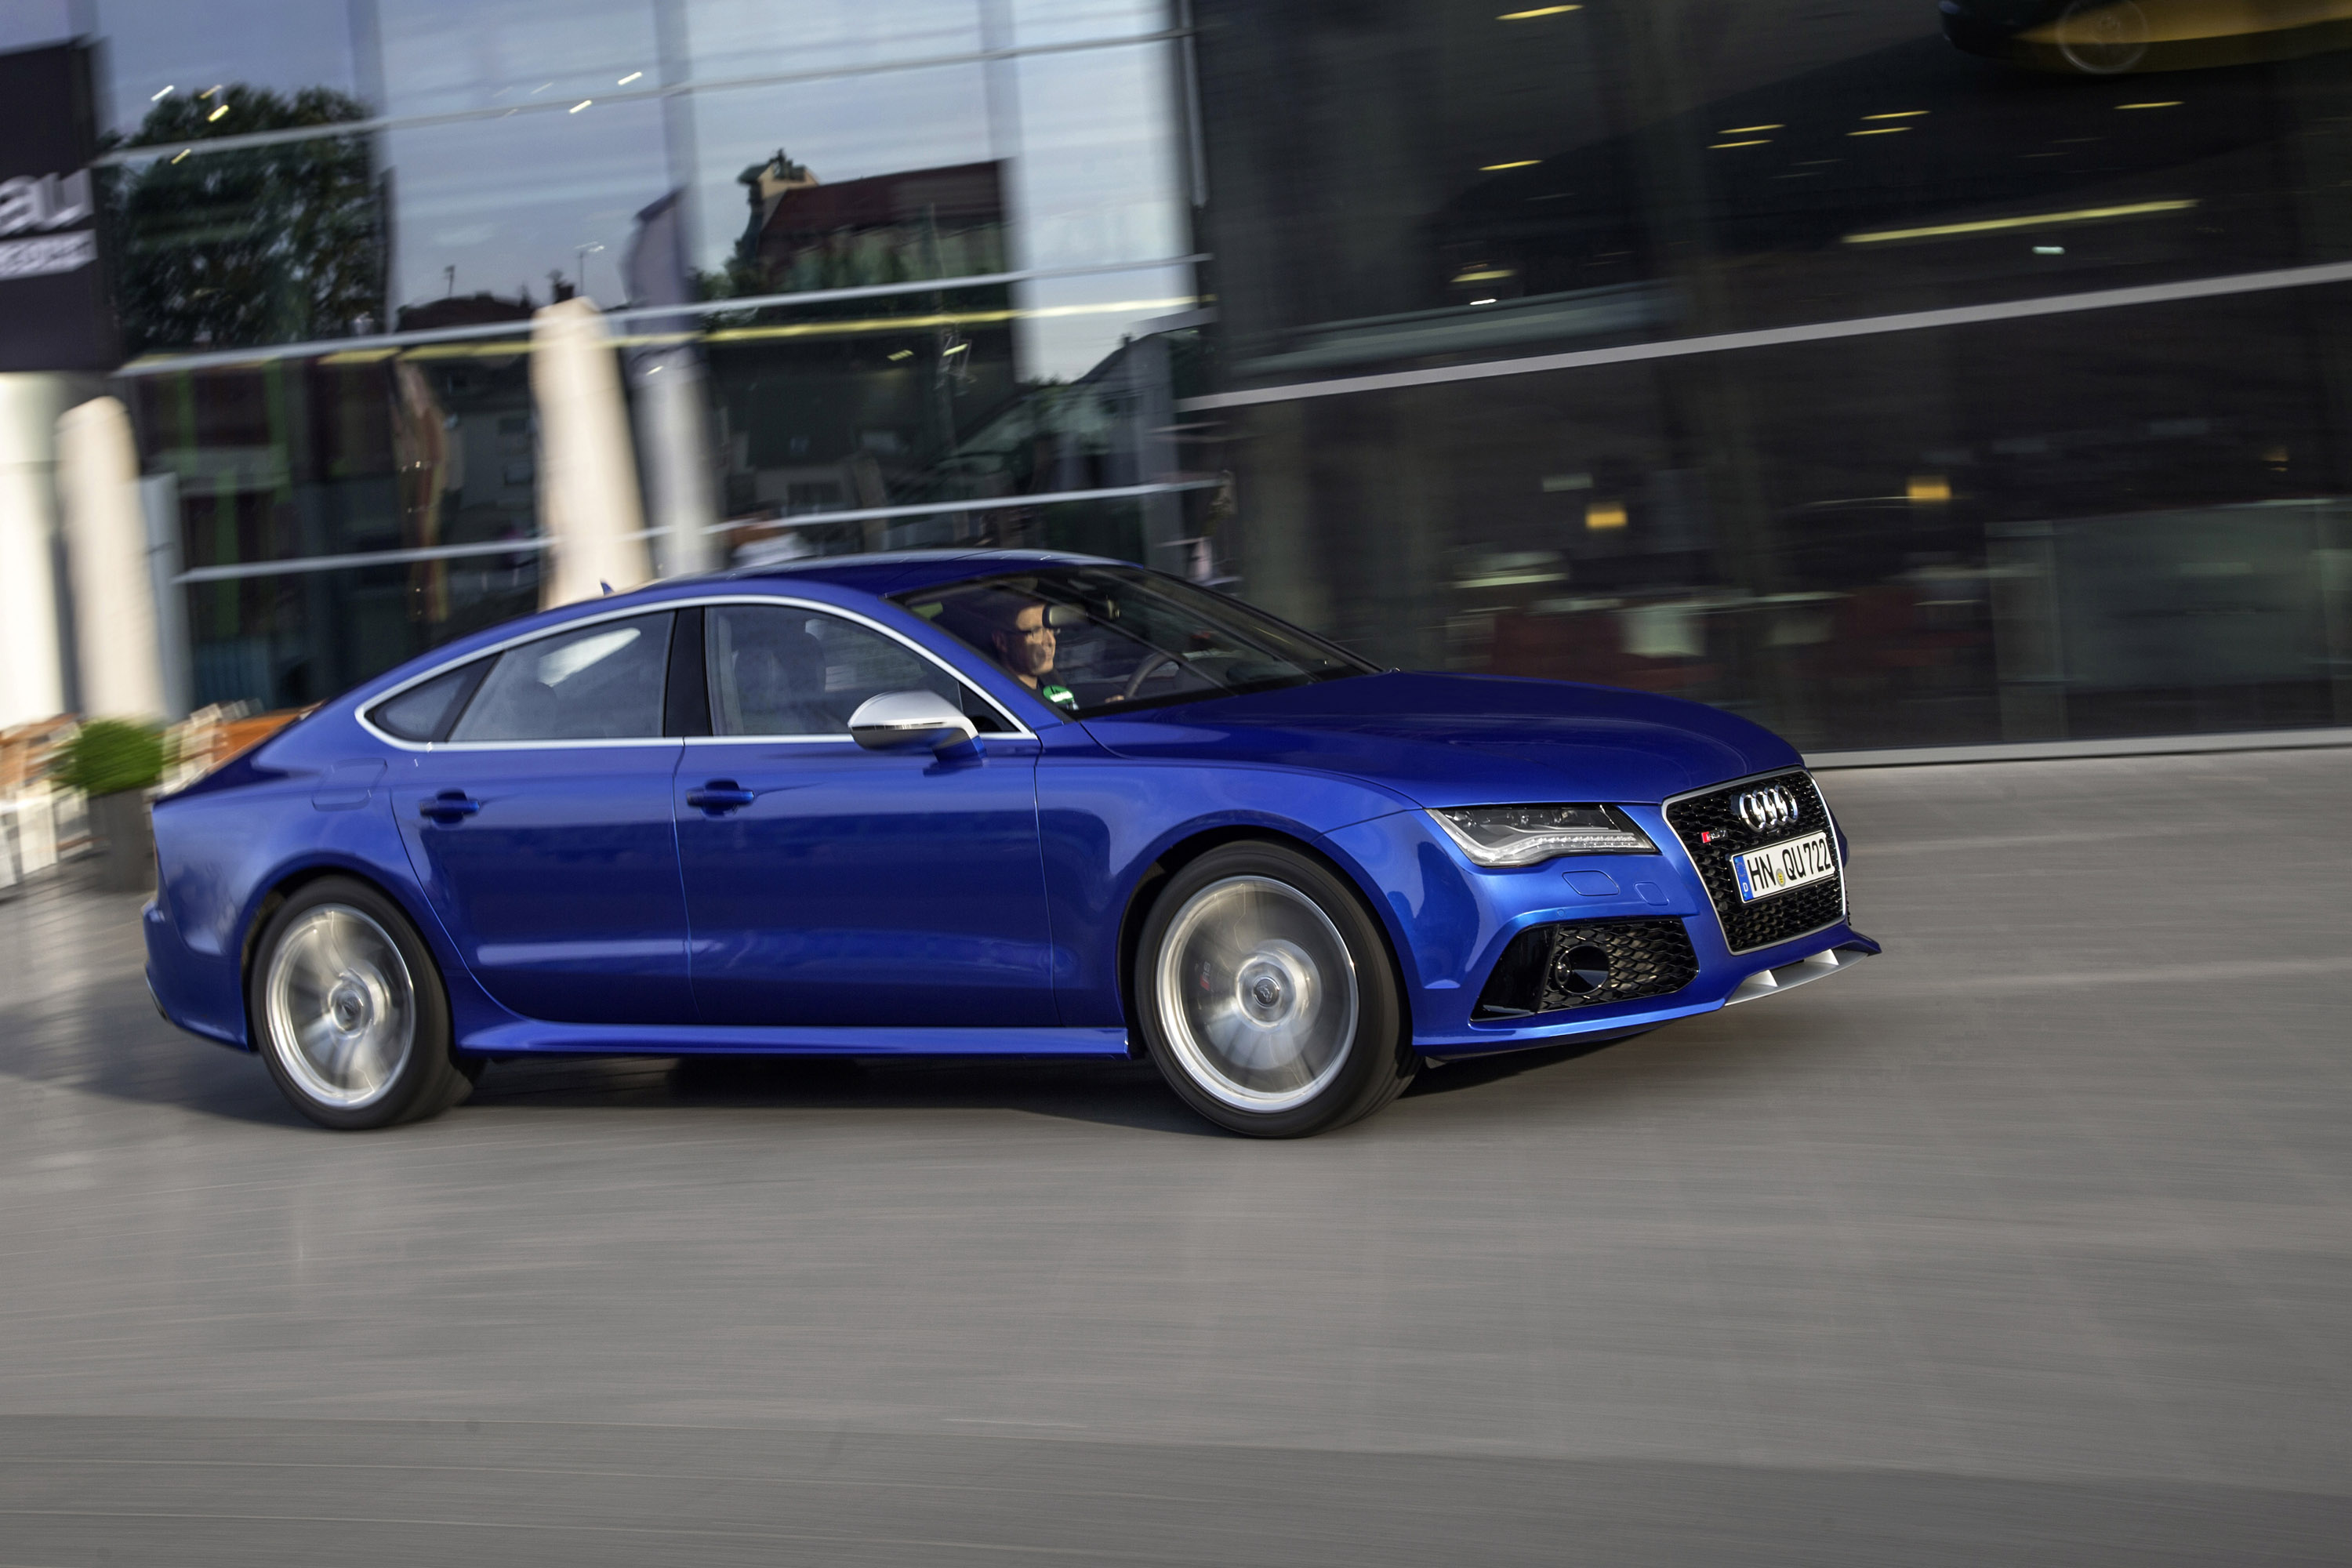 2014 Audi RS7 US Price 104900 Video